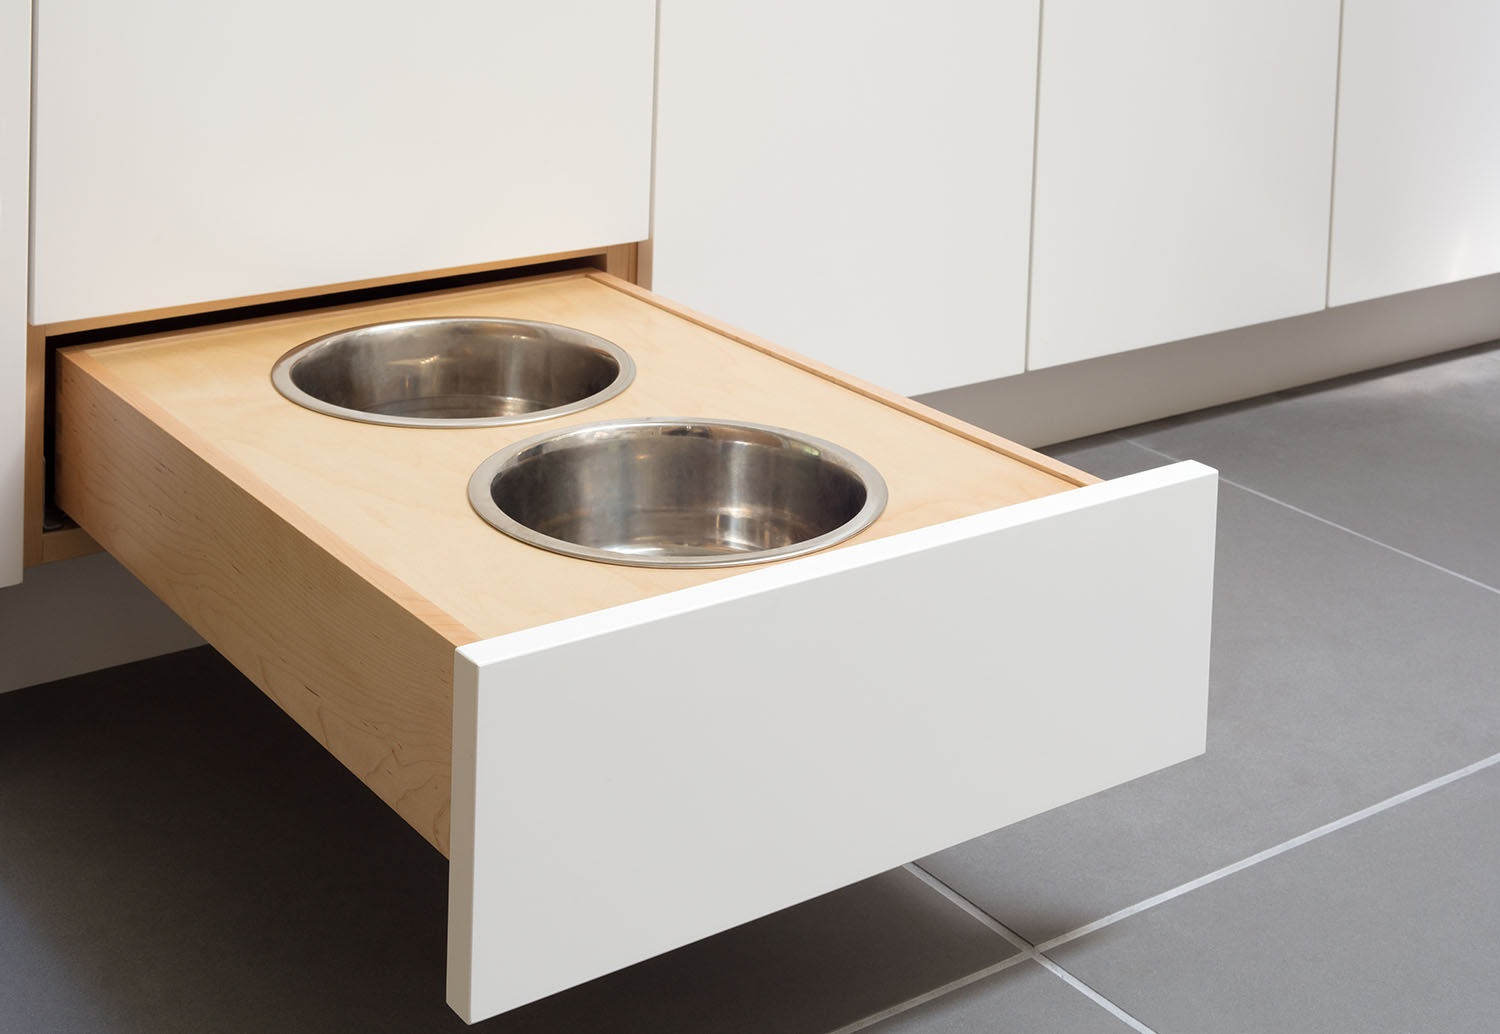 Custom pullout dog bowl